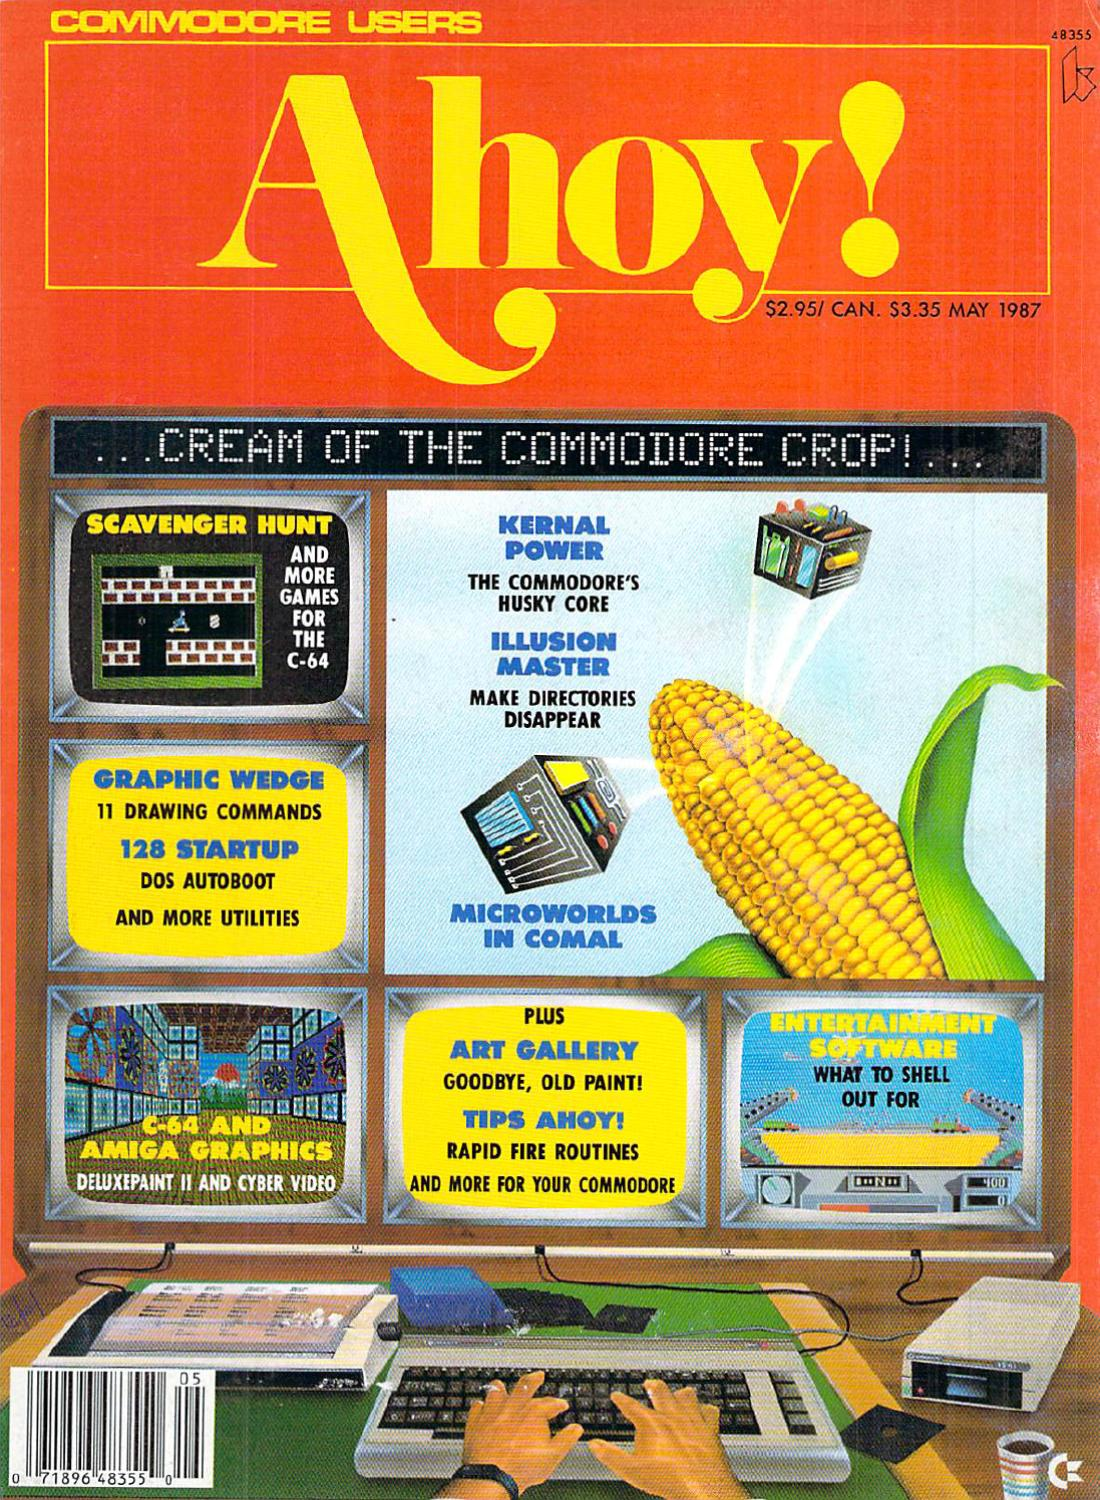 Ahoy Issue 41 1987 May By Zetmoon Issuu Electrical Lamp Circuit Experiment Stock Image C018 0076 Enlarged